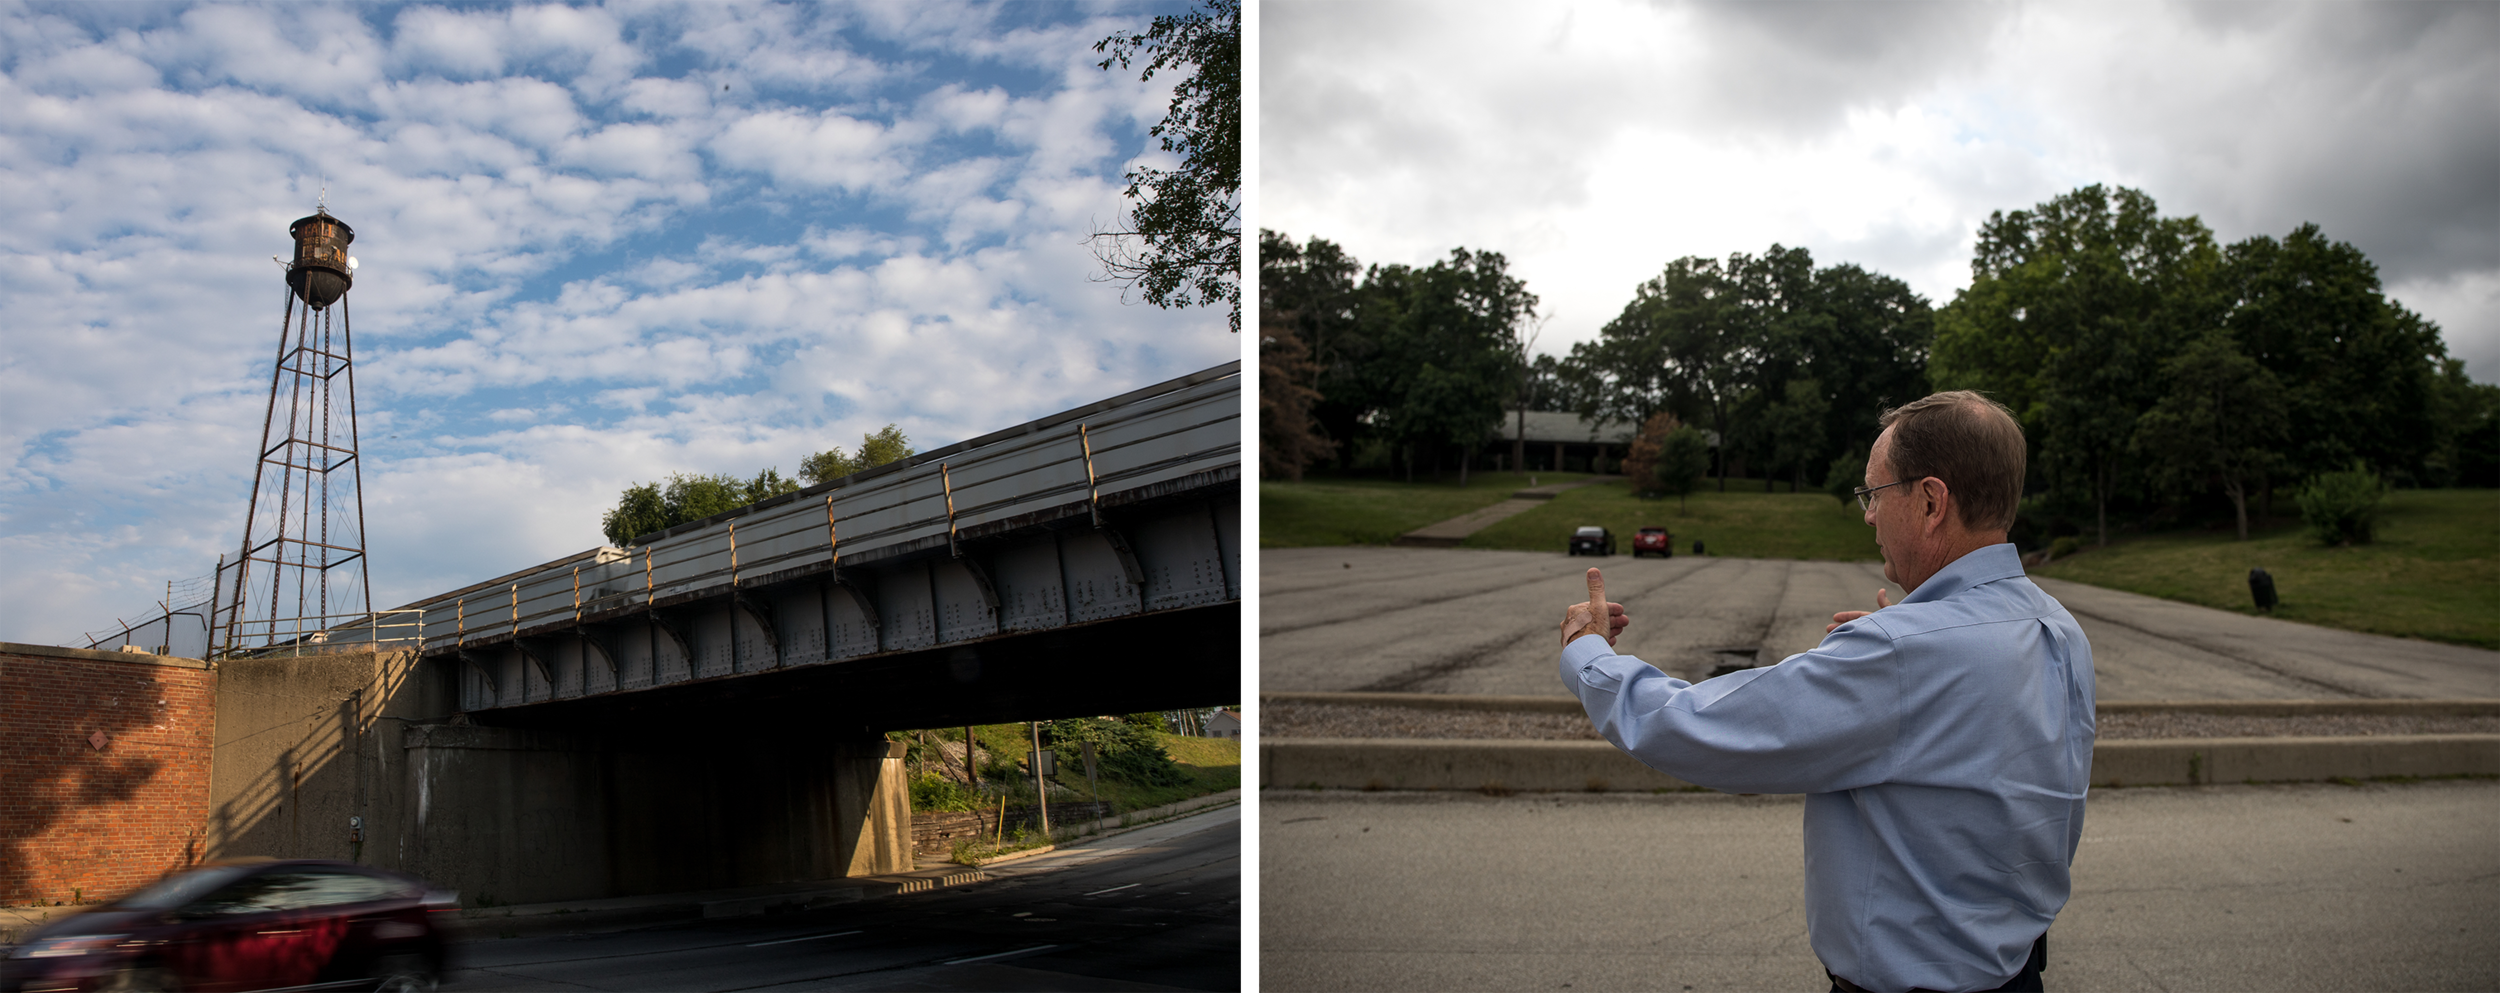 (Left) An old water tower in Decatur, Ill. (Right) Bill Clevenger, head of Decatur Park District, explains the location of an amphitheater near the shore of Lake Decatur that Howard Buffett is funding in Decatur, Ill. Clevenger says the amphitheater will bring tourism money into the community.